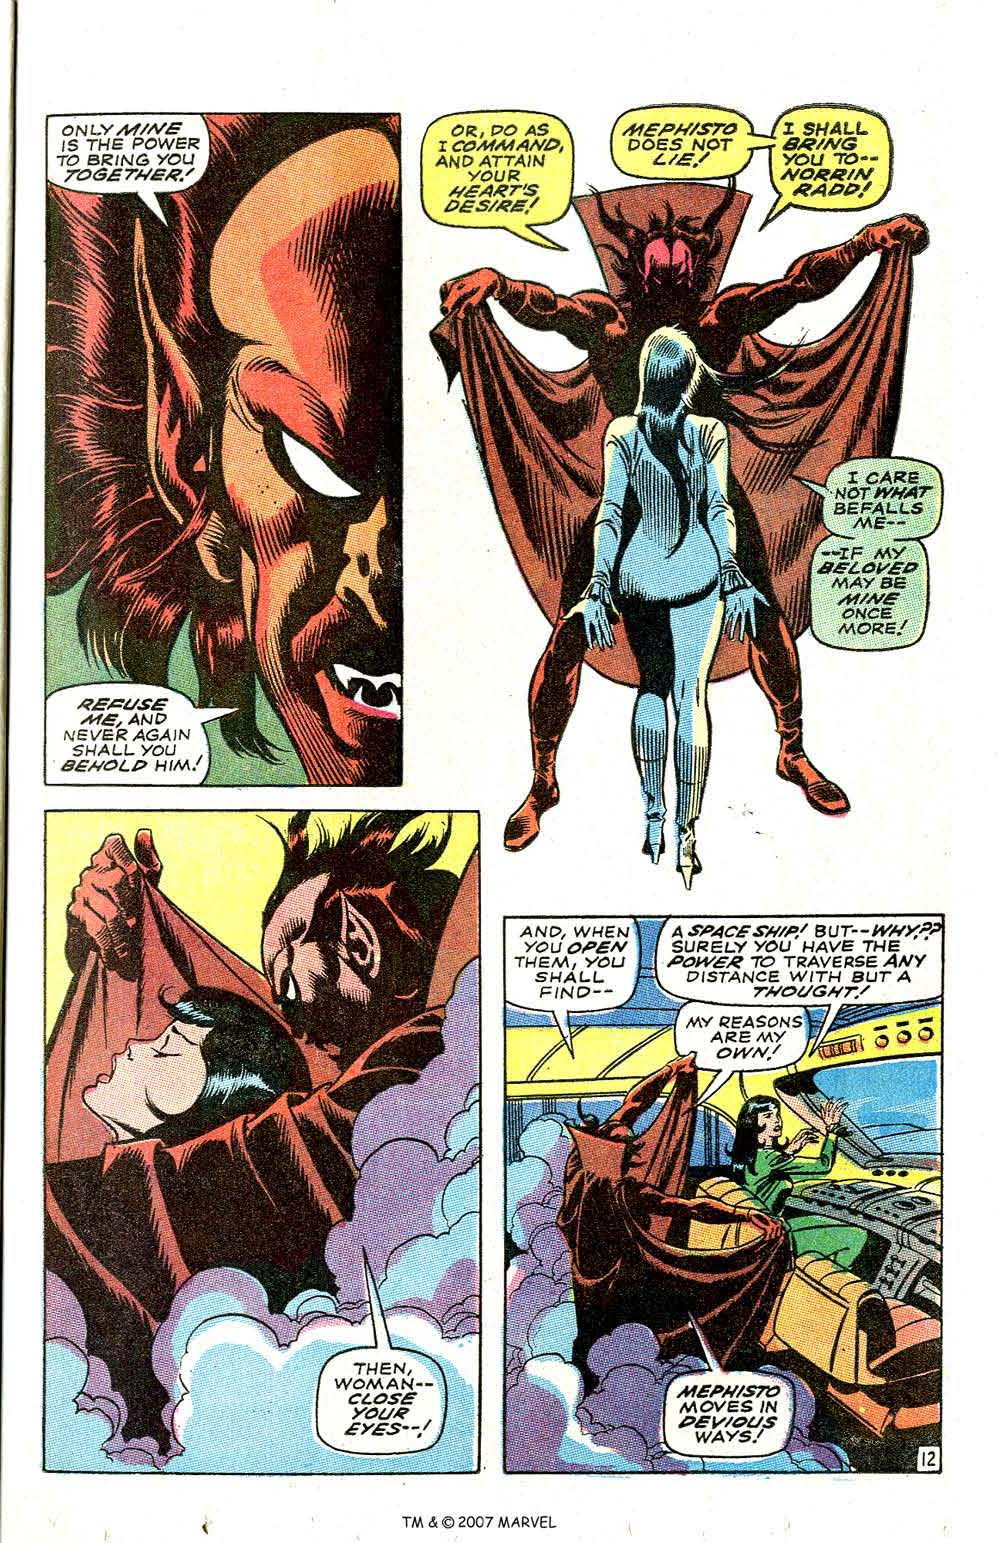 In 'Silver Surfer' (1968) #3, Shalla Bal makes a deal with Mephisto in order to see Norrin Radd again.